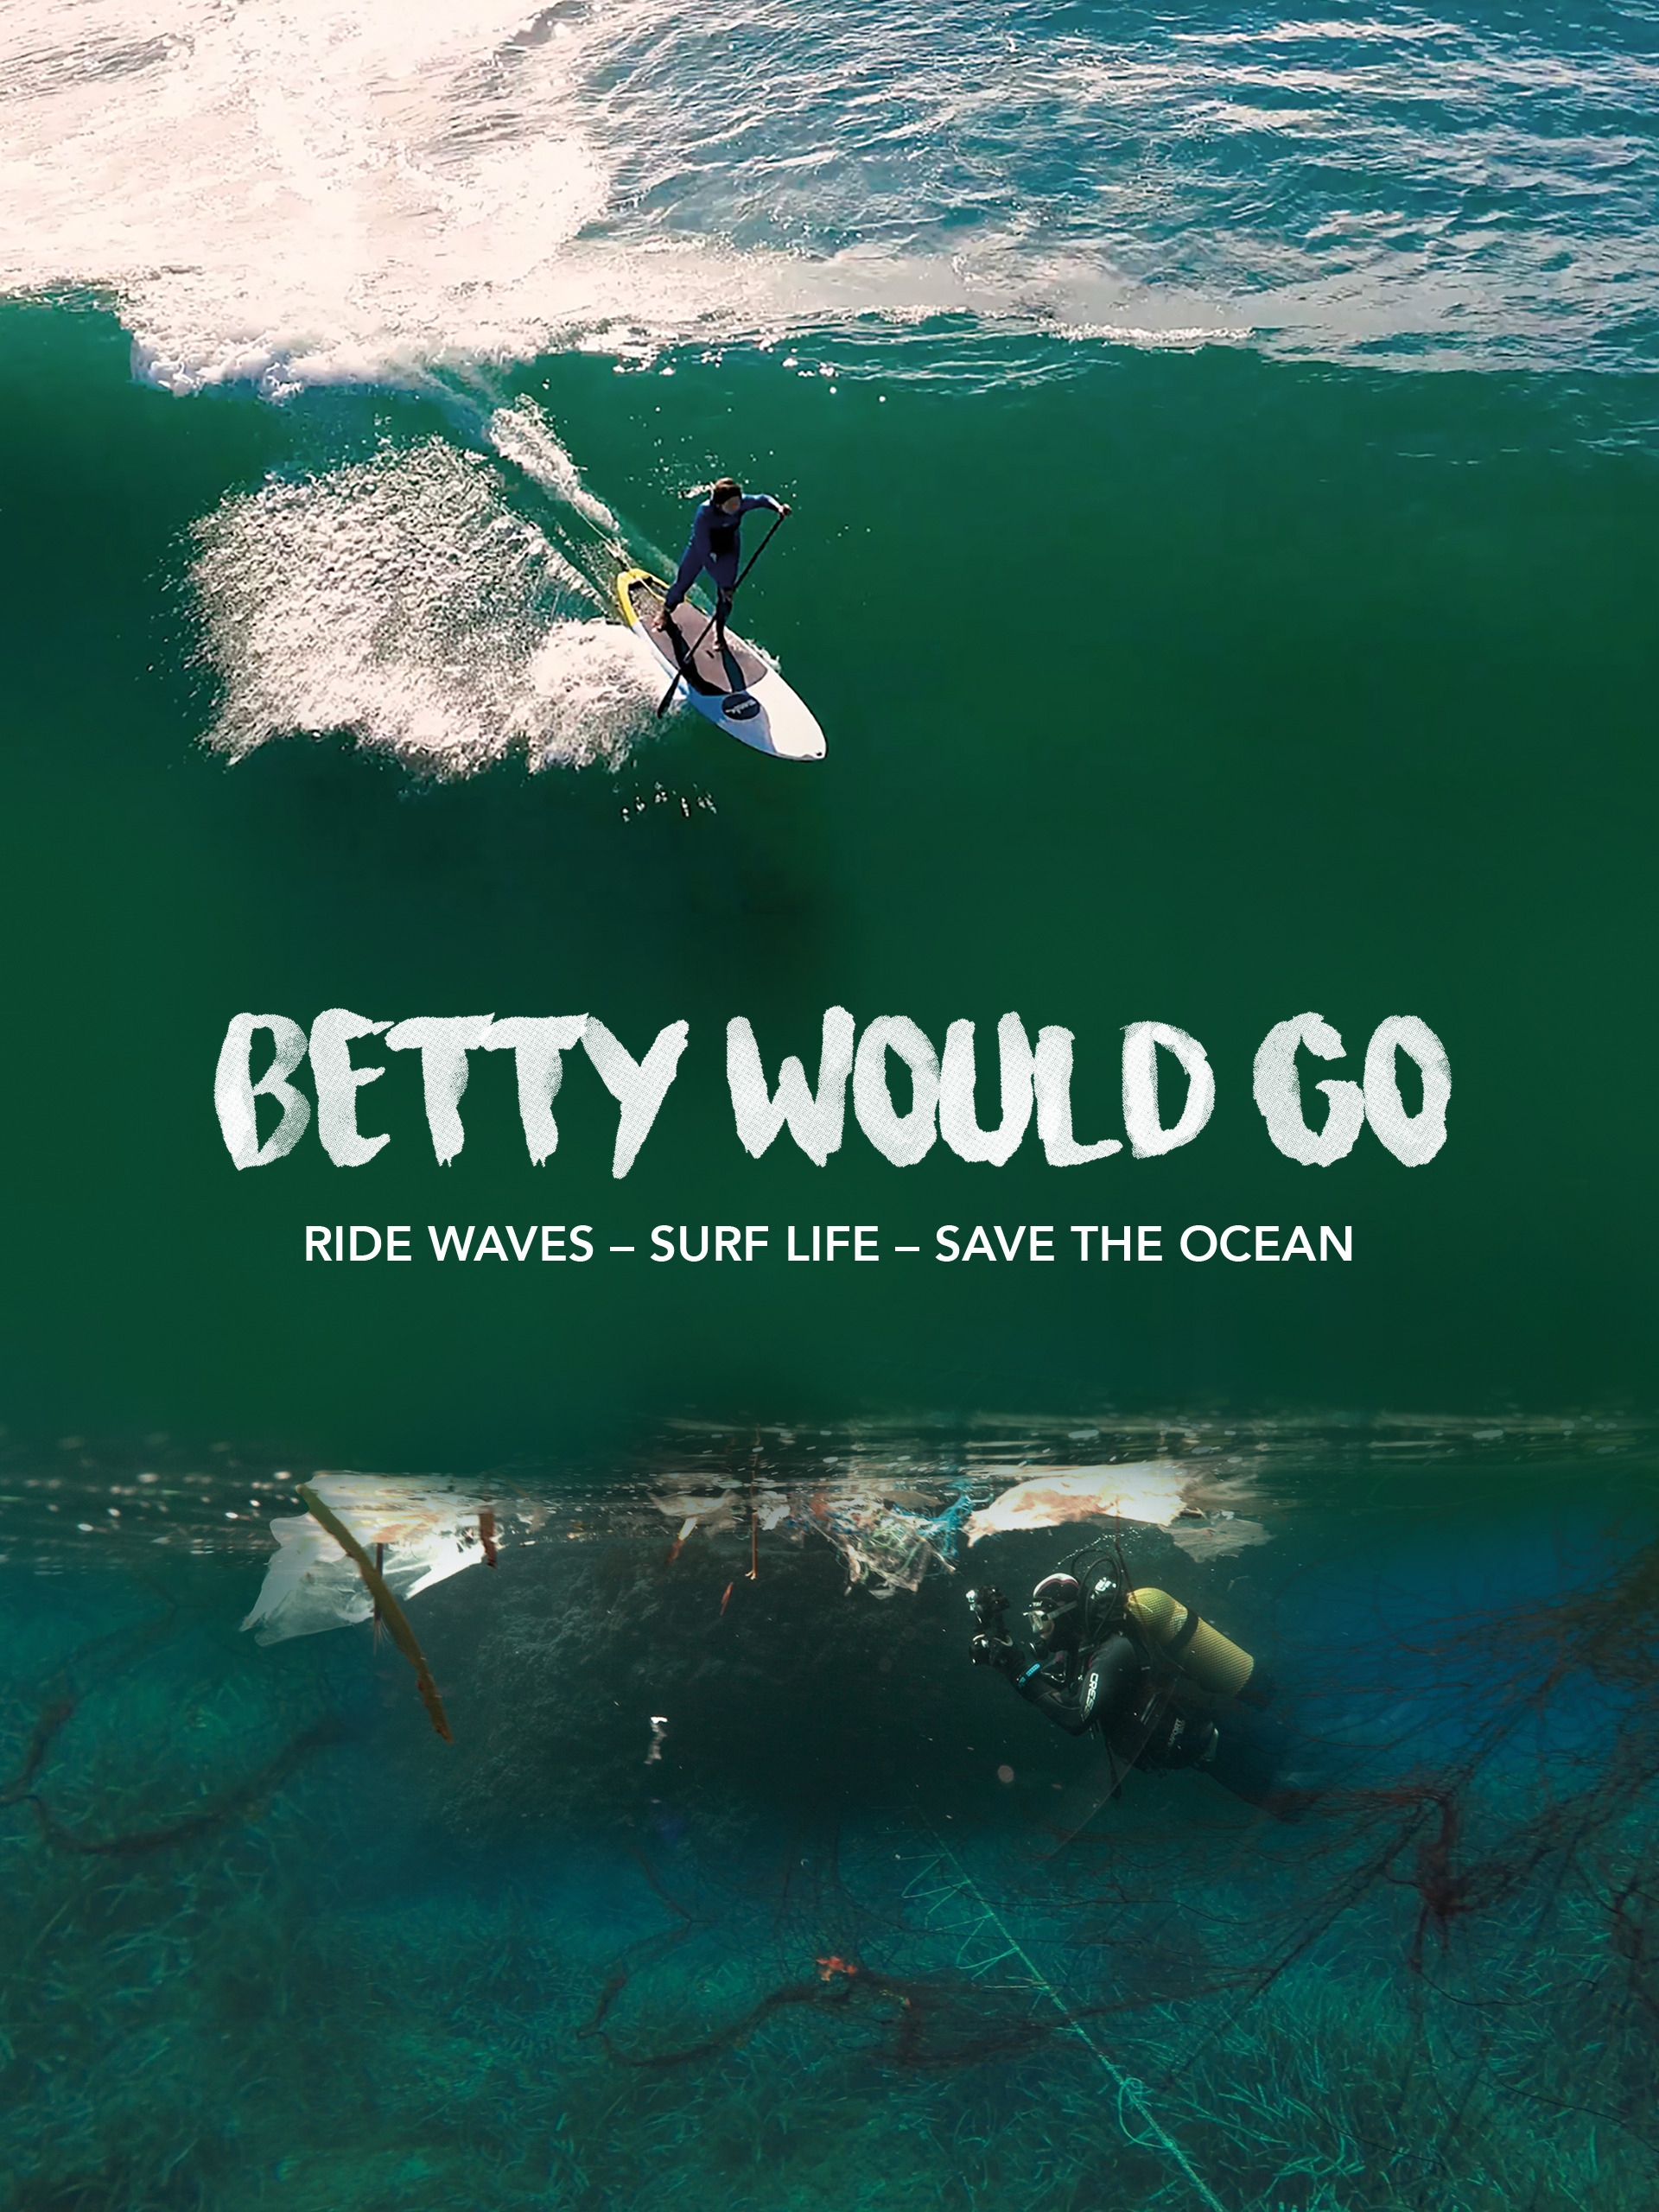 Betty Would Go - Ride Waves - Surf Life - Save the Ocean